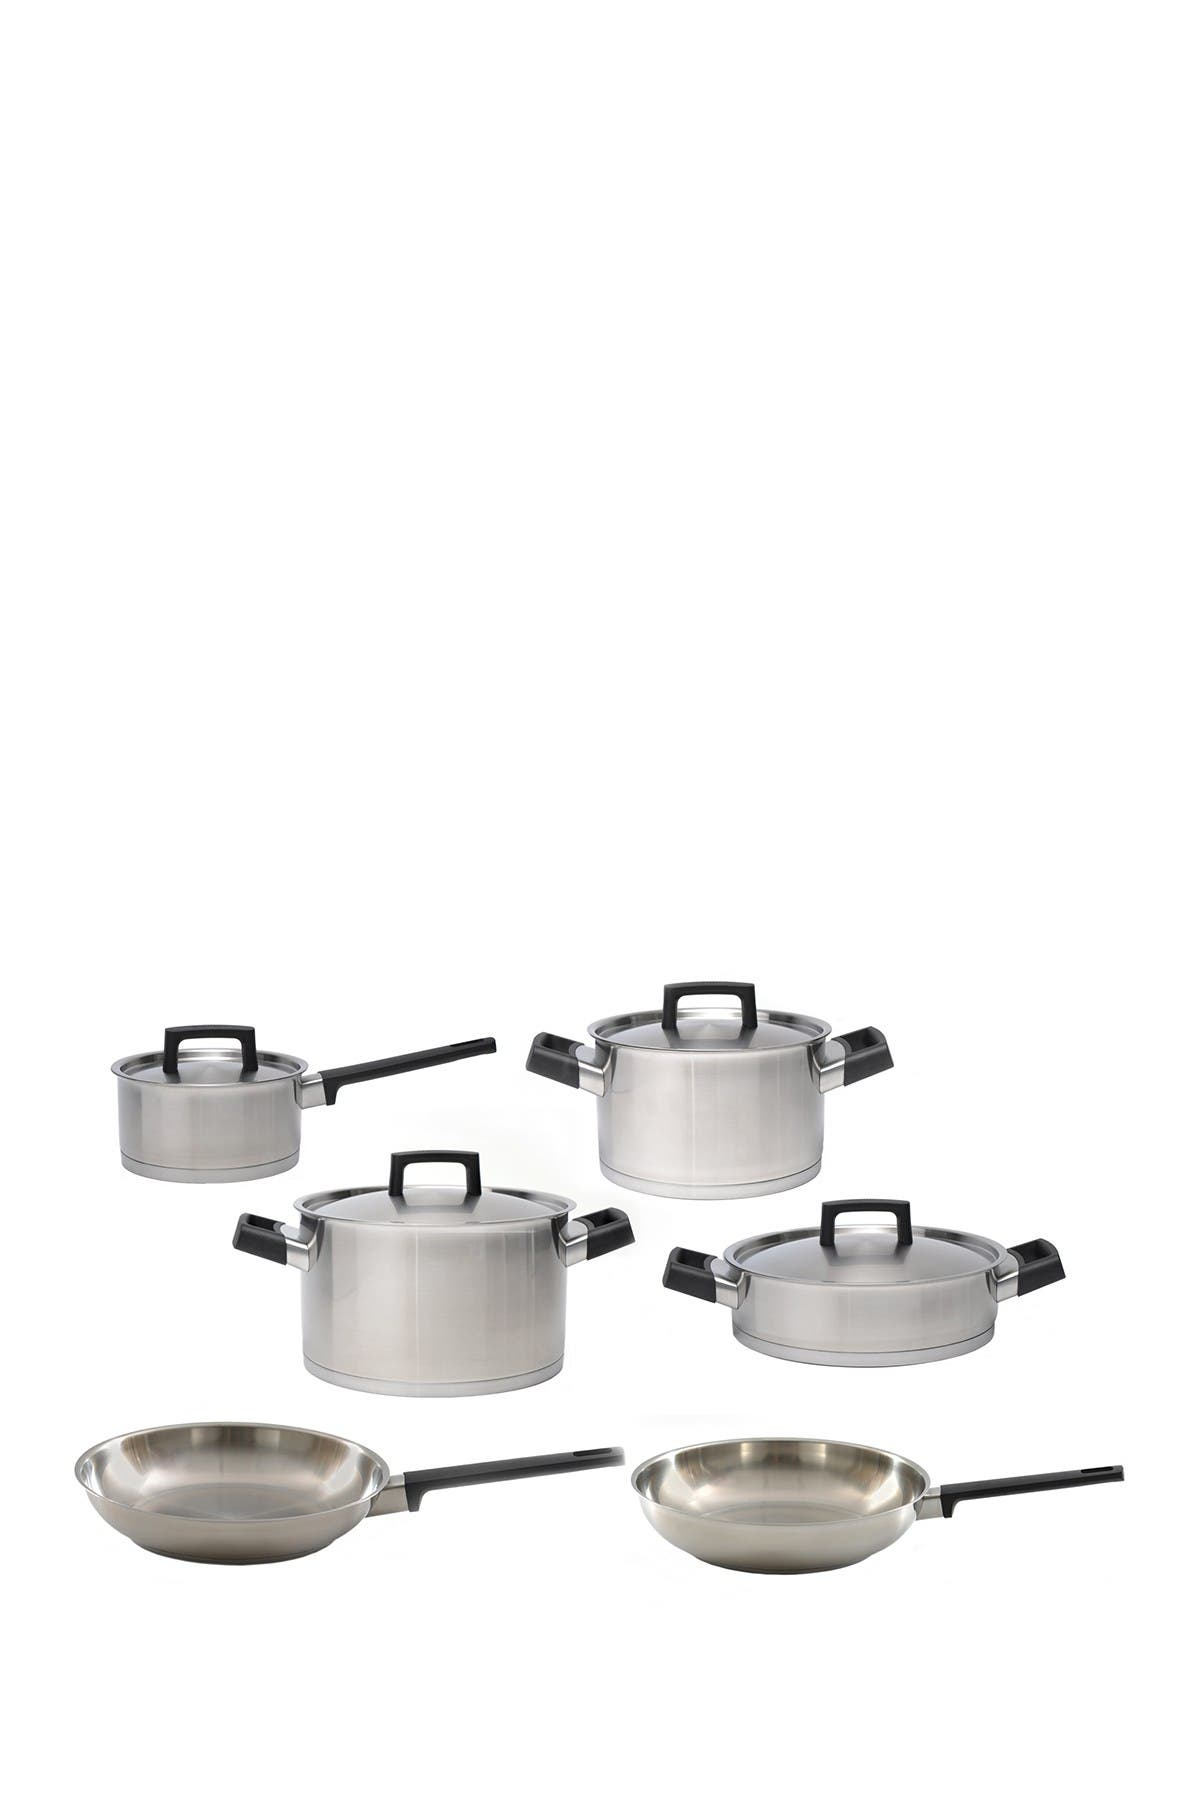 Image of BergHOFF Silver/Black 18/10 Stainless Steel 10-Piece Cookware Set